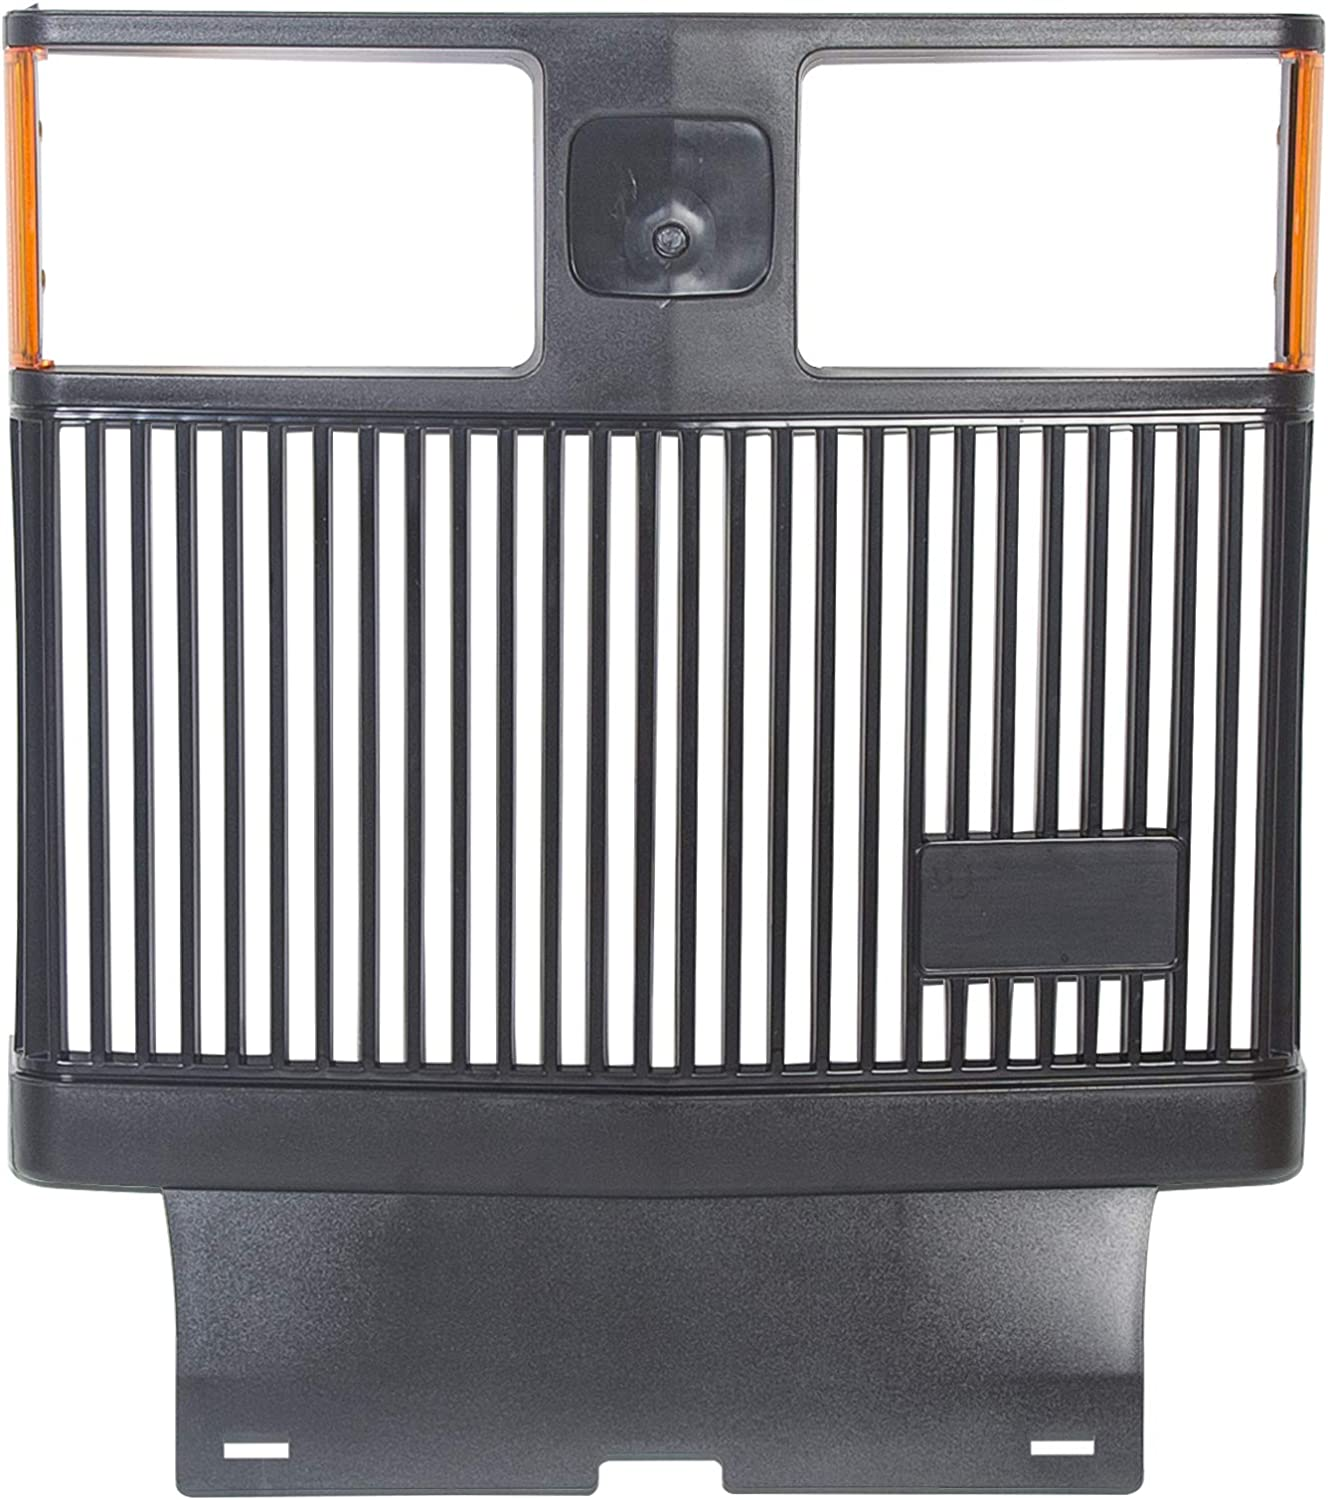 Front Grille Compatible With John Deere Tractor 415 425 445 455 safety Sale price